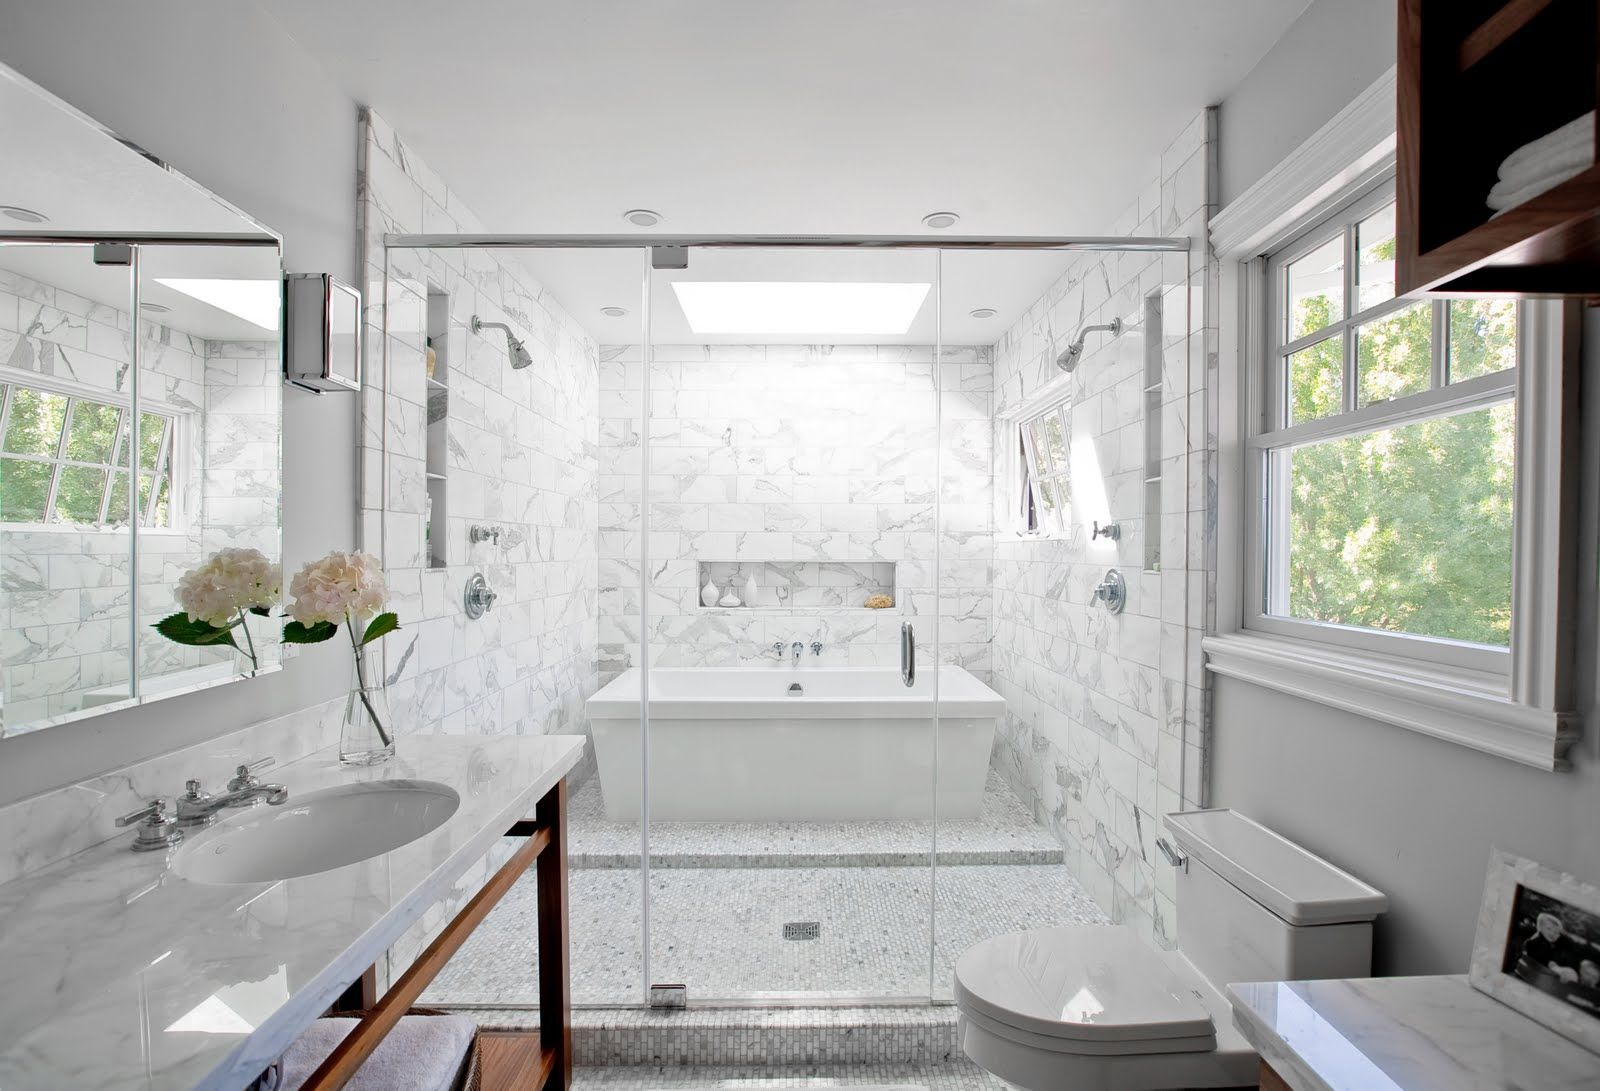 1000+ images about Vintage Black, Grey and White Bath on Pinterest ...